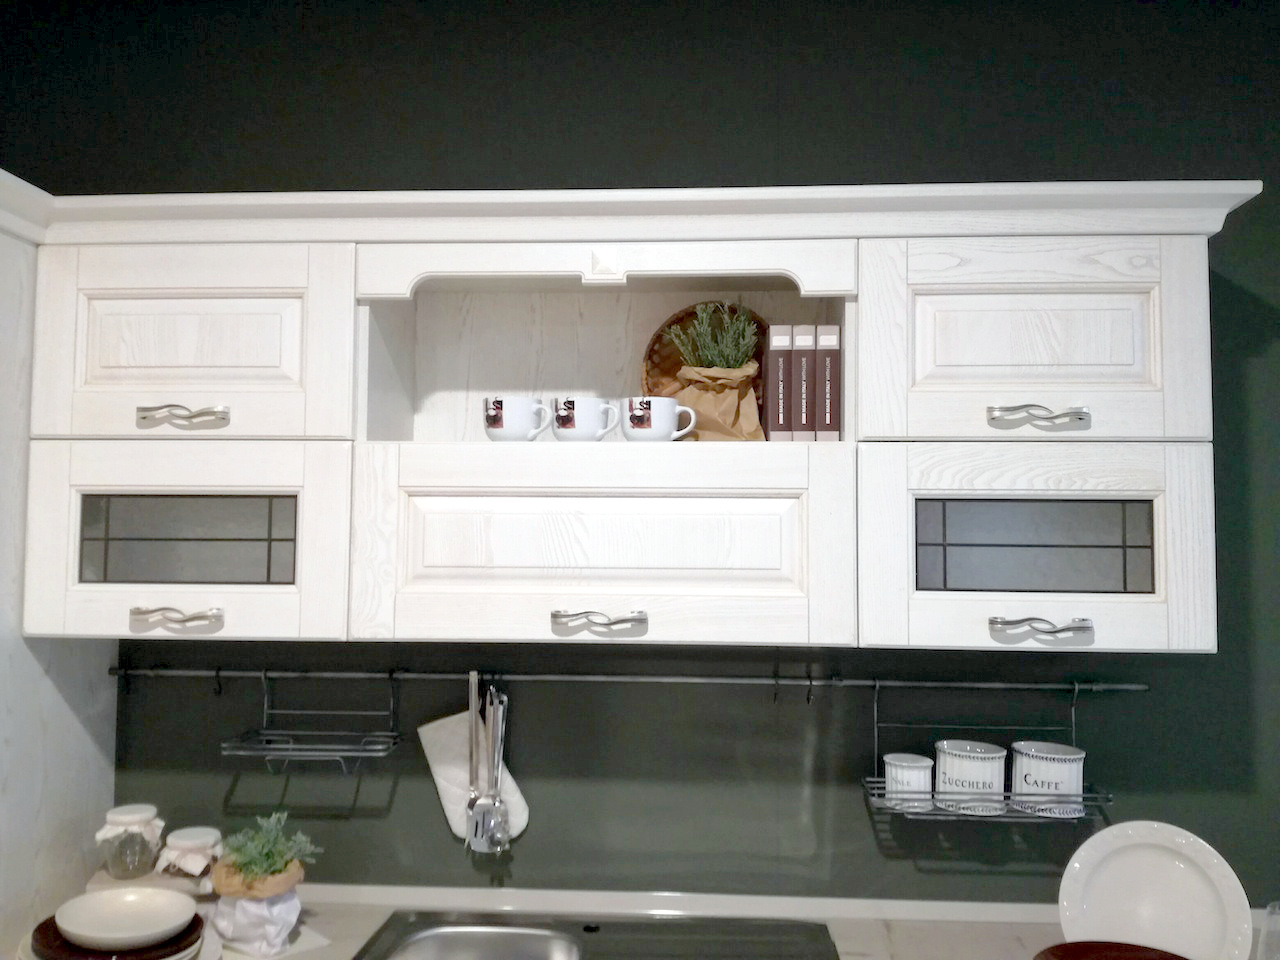 Lube Laura. Cucine Lube Laura Wooden Kitchen With Lube Laura. Cucina ...